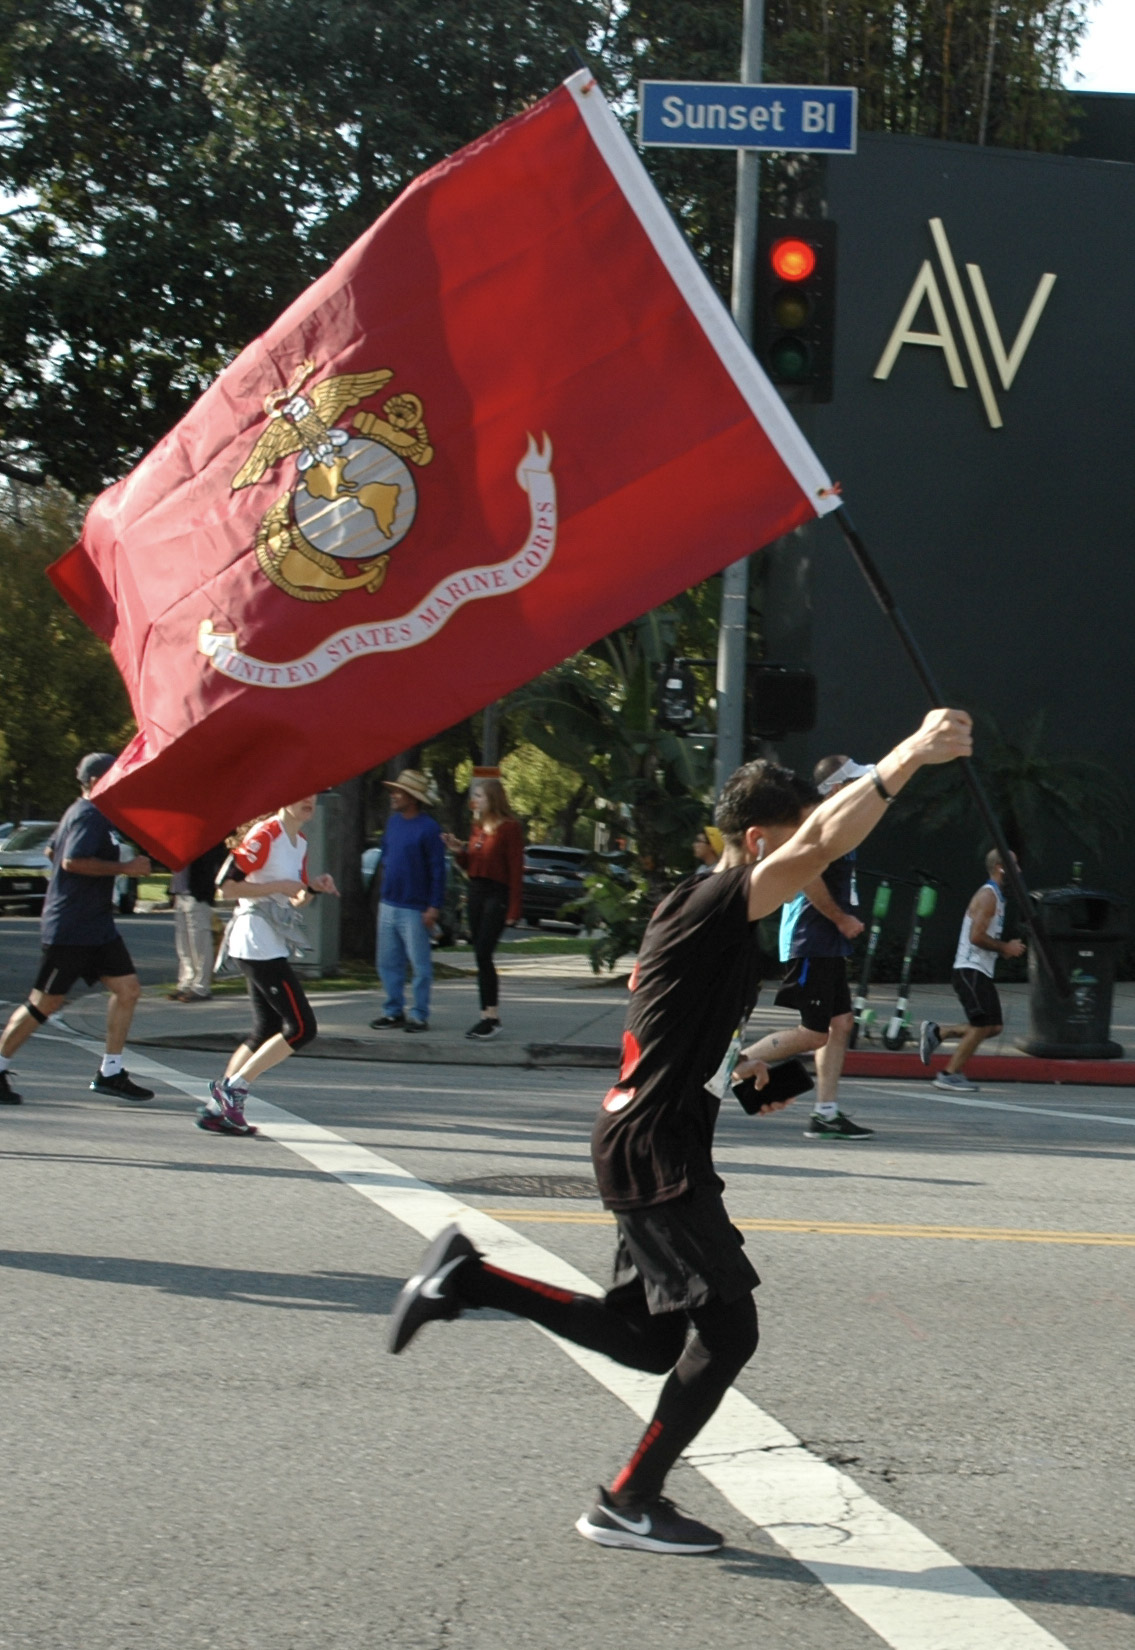 A runner participating in the Los Angeles Marathon waves a United States Marine Corps. flag as he approaches the half-way point of the race in Los Angeles, California, on March 24, 2019.  (Dakota Castets-Didier/The Corsair)